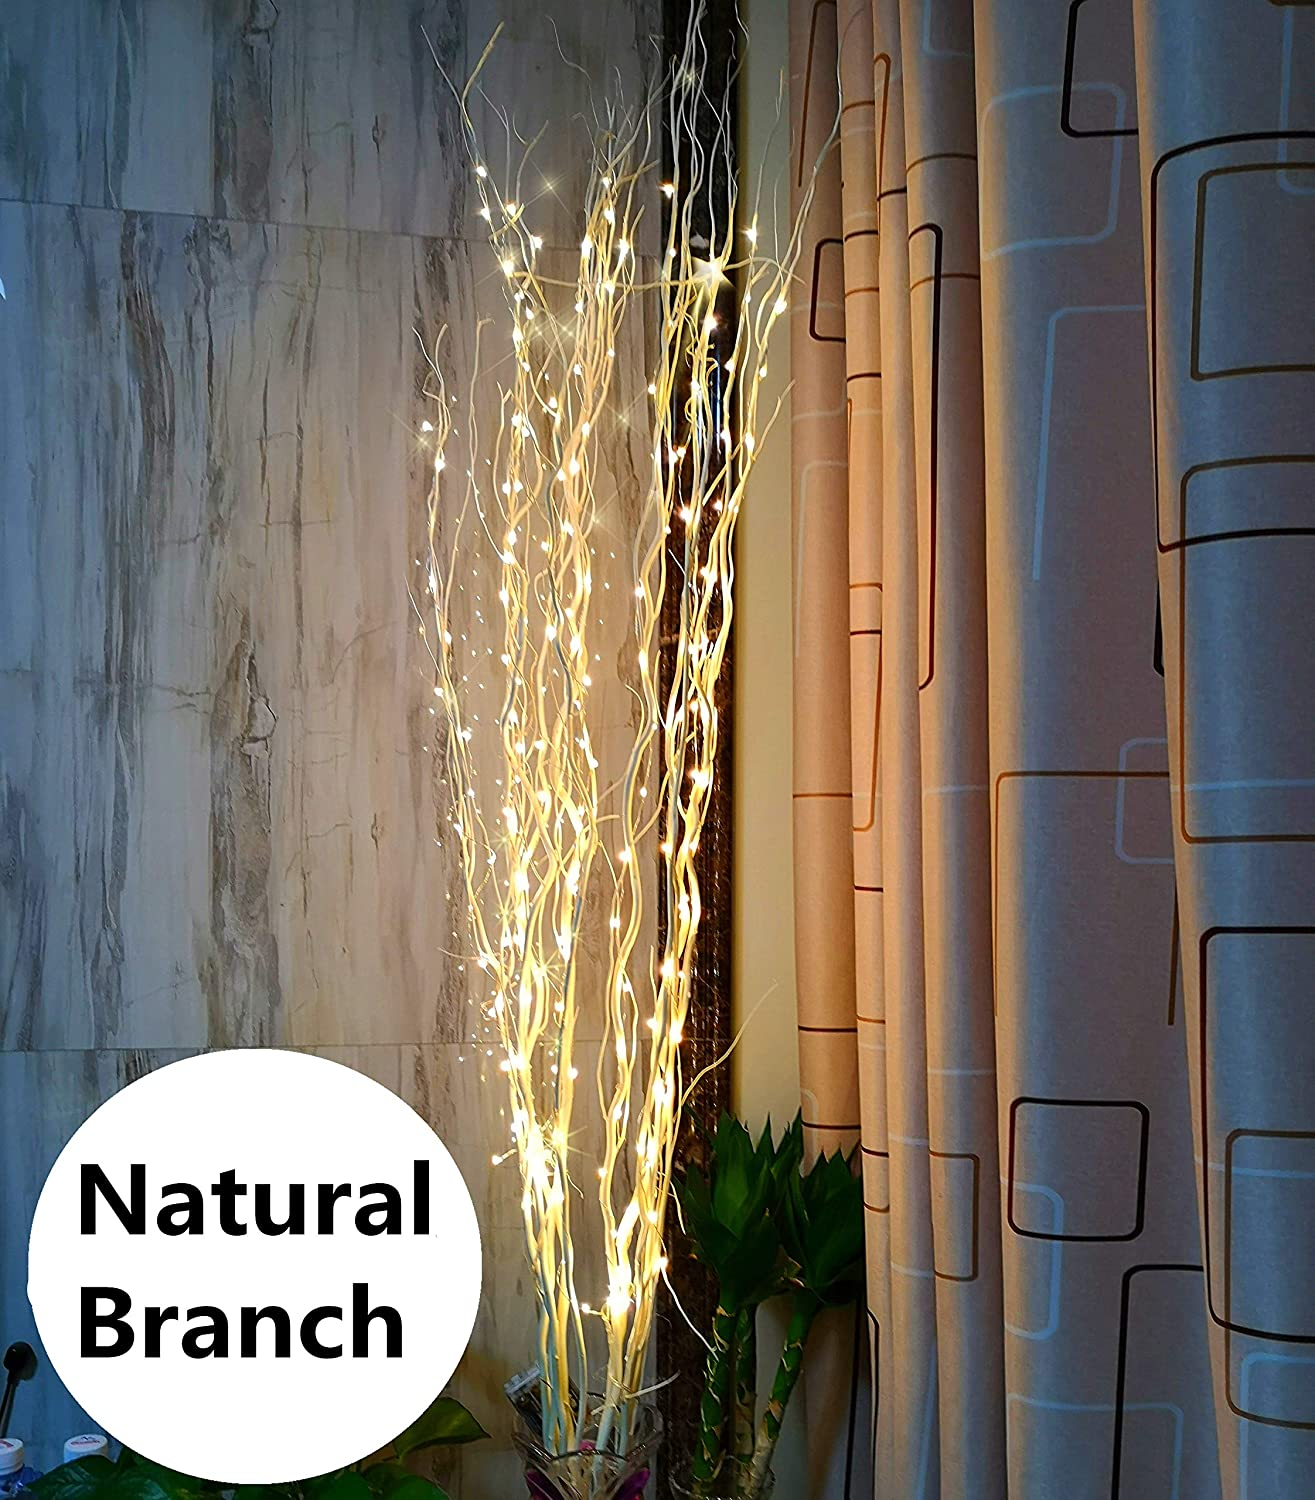 51Inch LED Natural Willow Twig Lighted Branch for Christmas Wedding Party  Home Decoration Battery Powered DIY (Warm White)